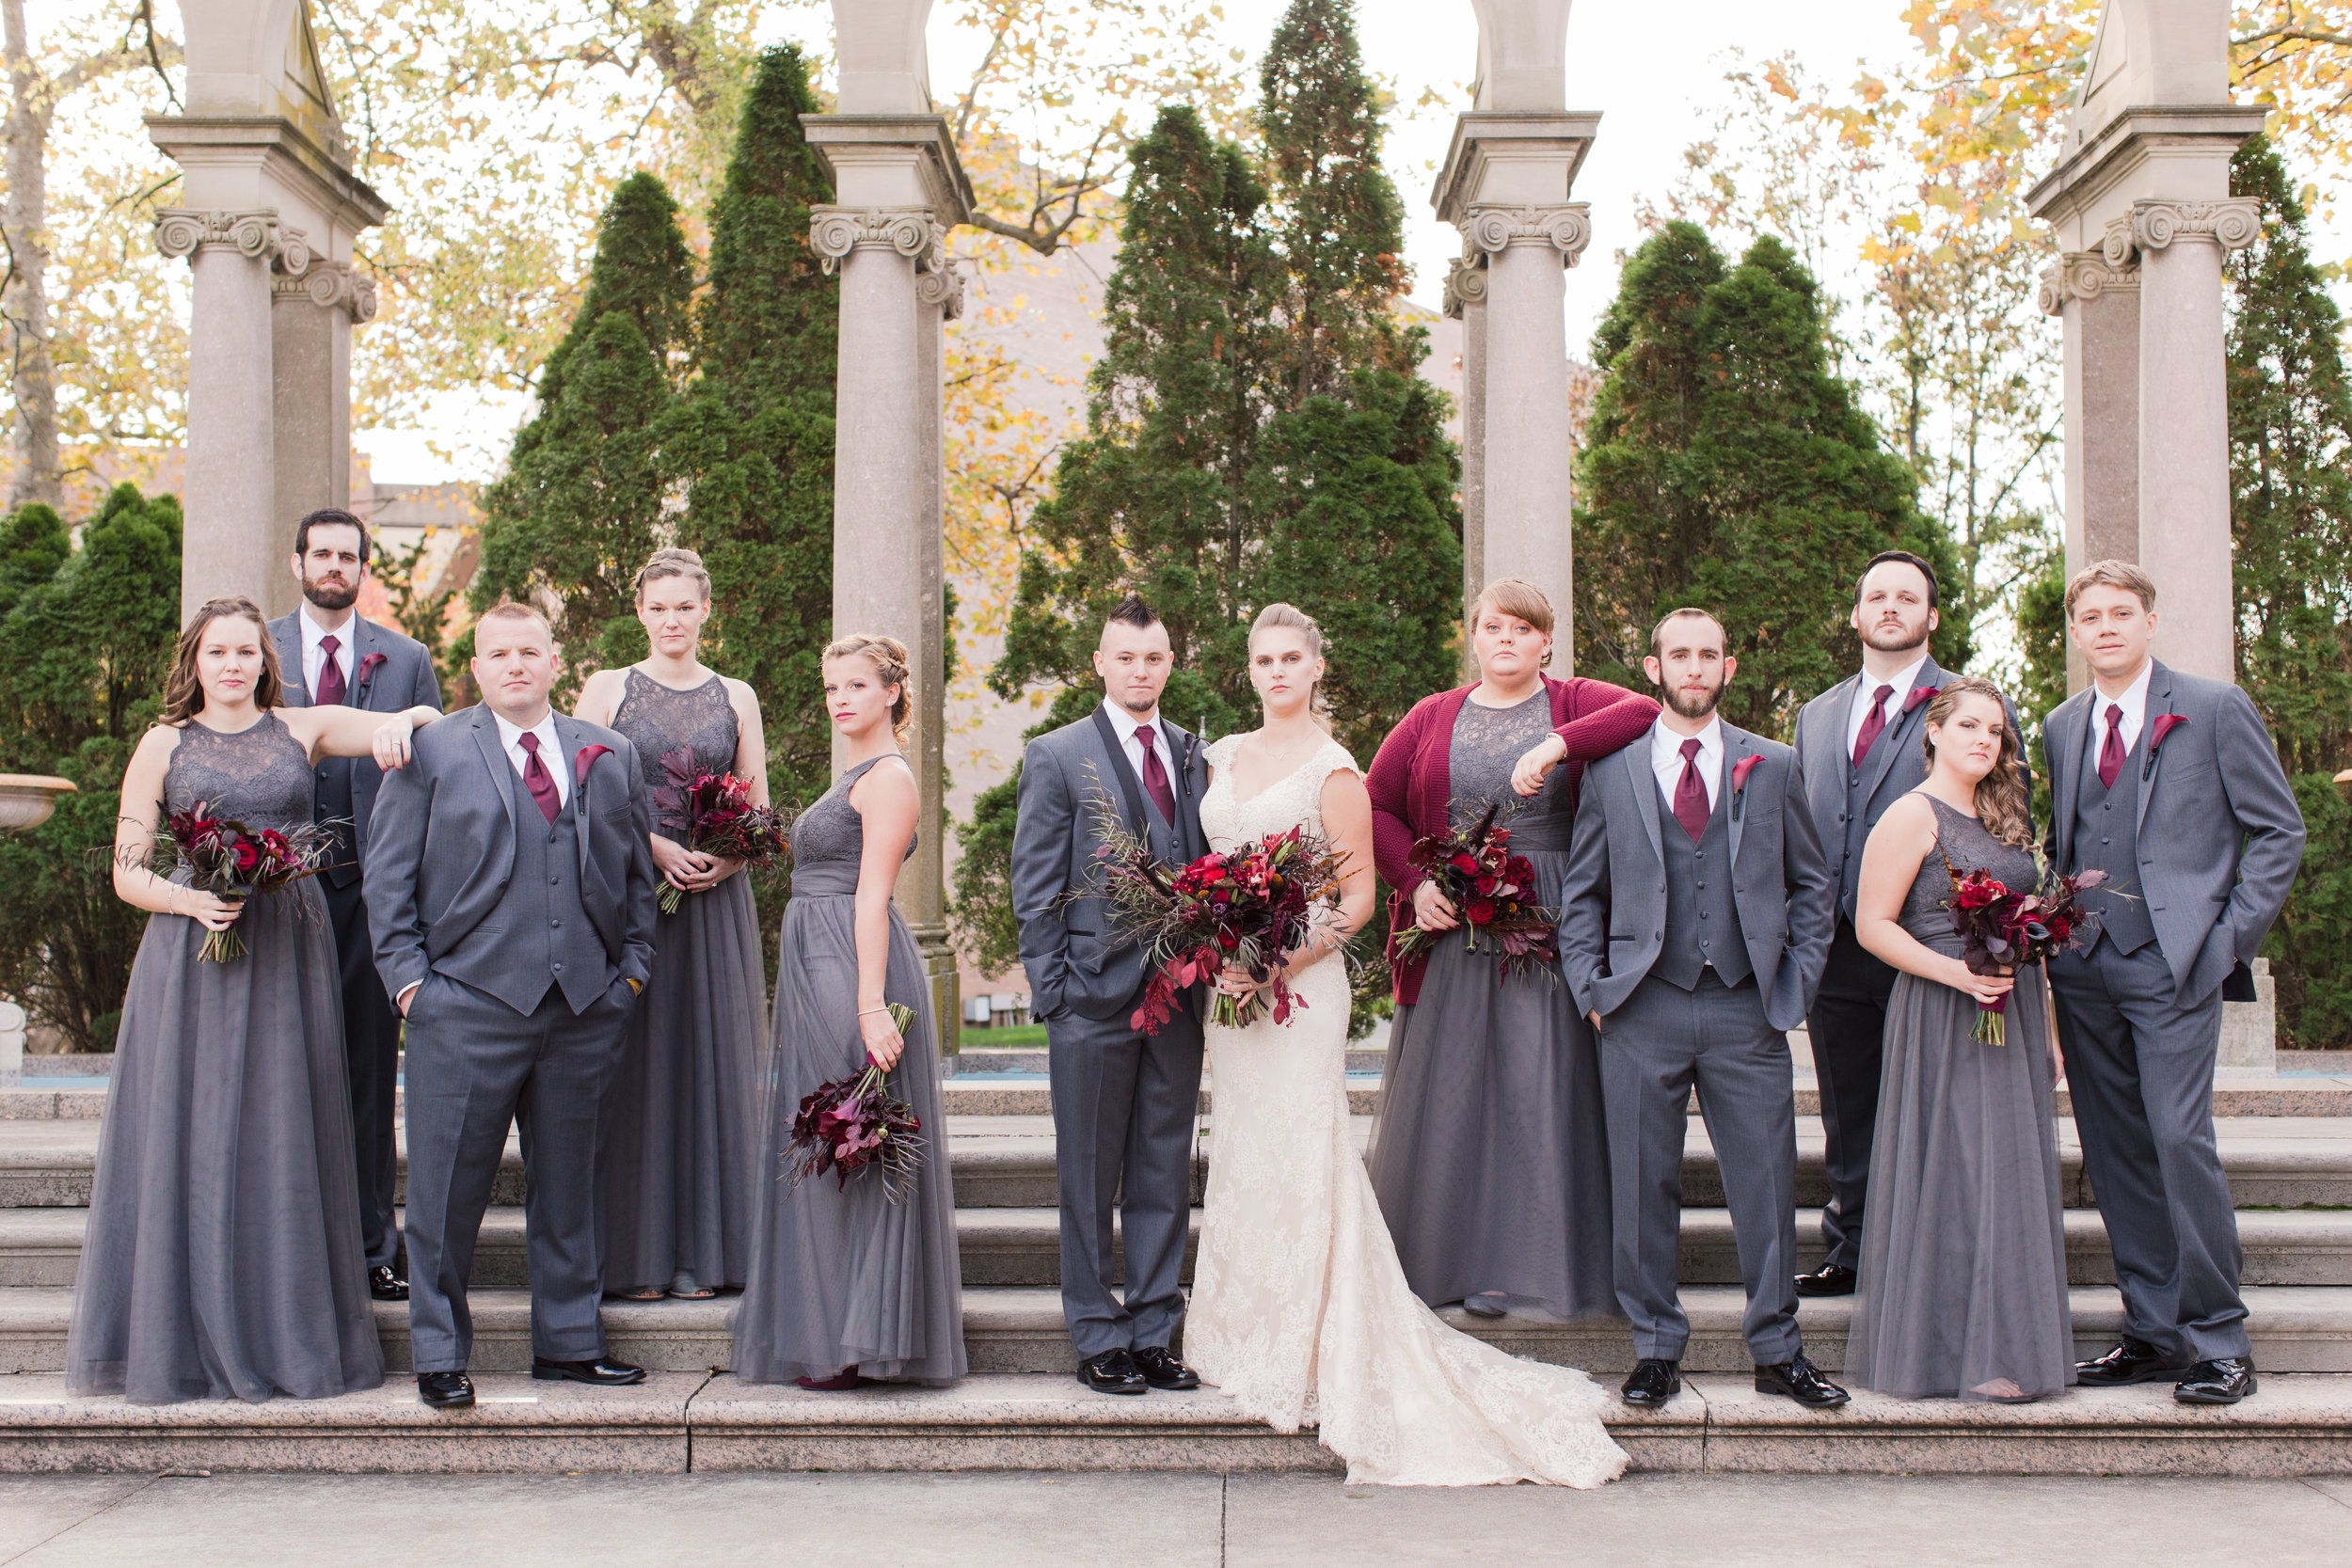 Bridal party in charcoal gray chiffon bridesmaid dresses with lace and groomsmen in black and gray tuxes pose with bride in allure bridal lace wedding gown and groom at monmouth university in the fall